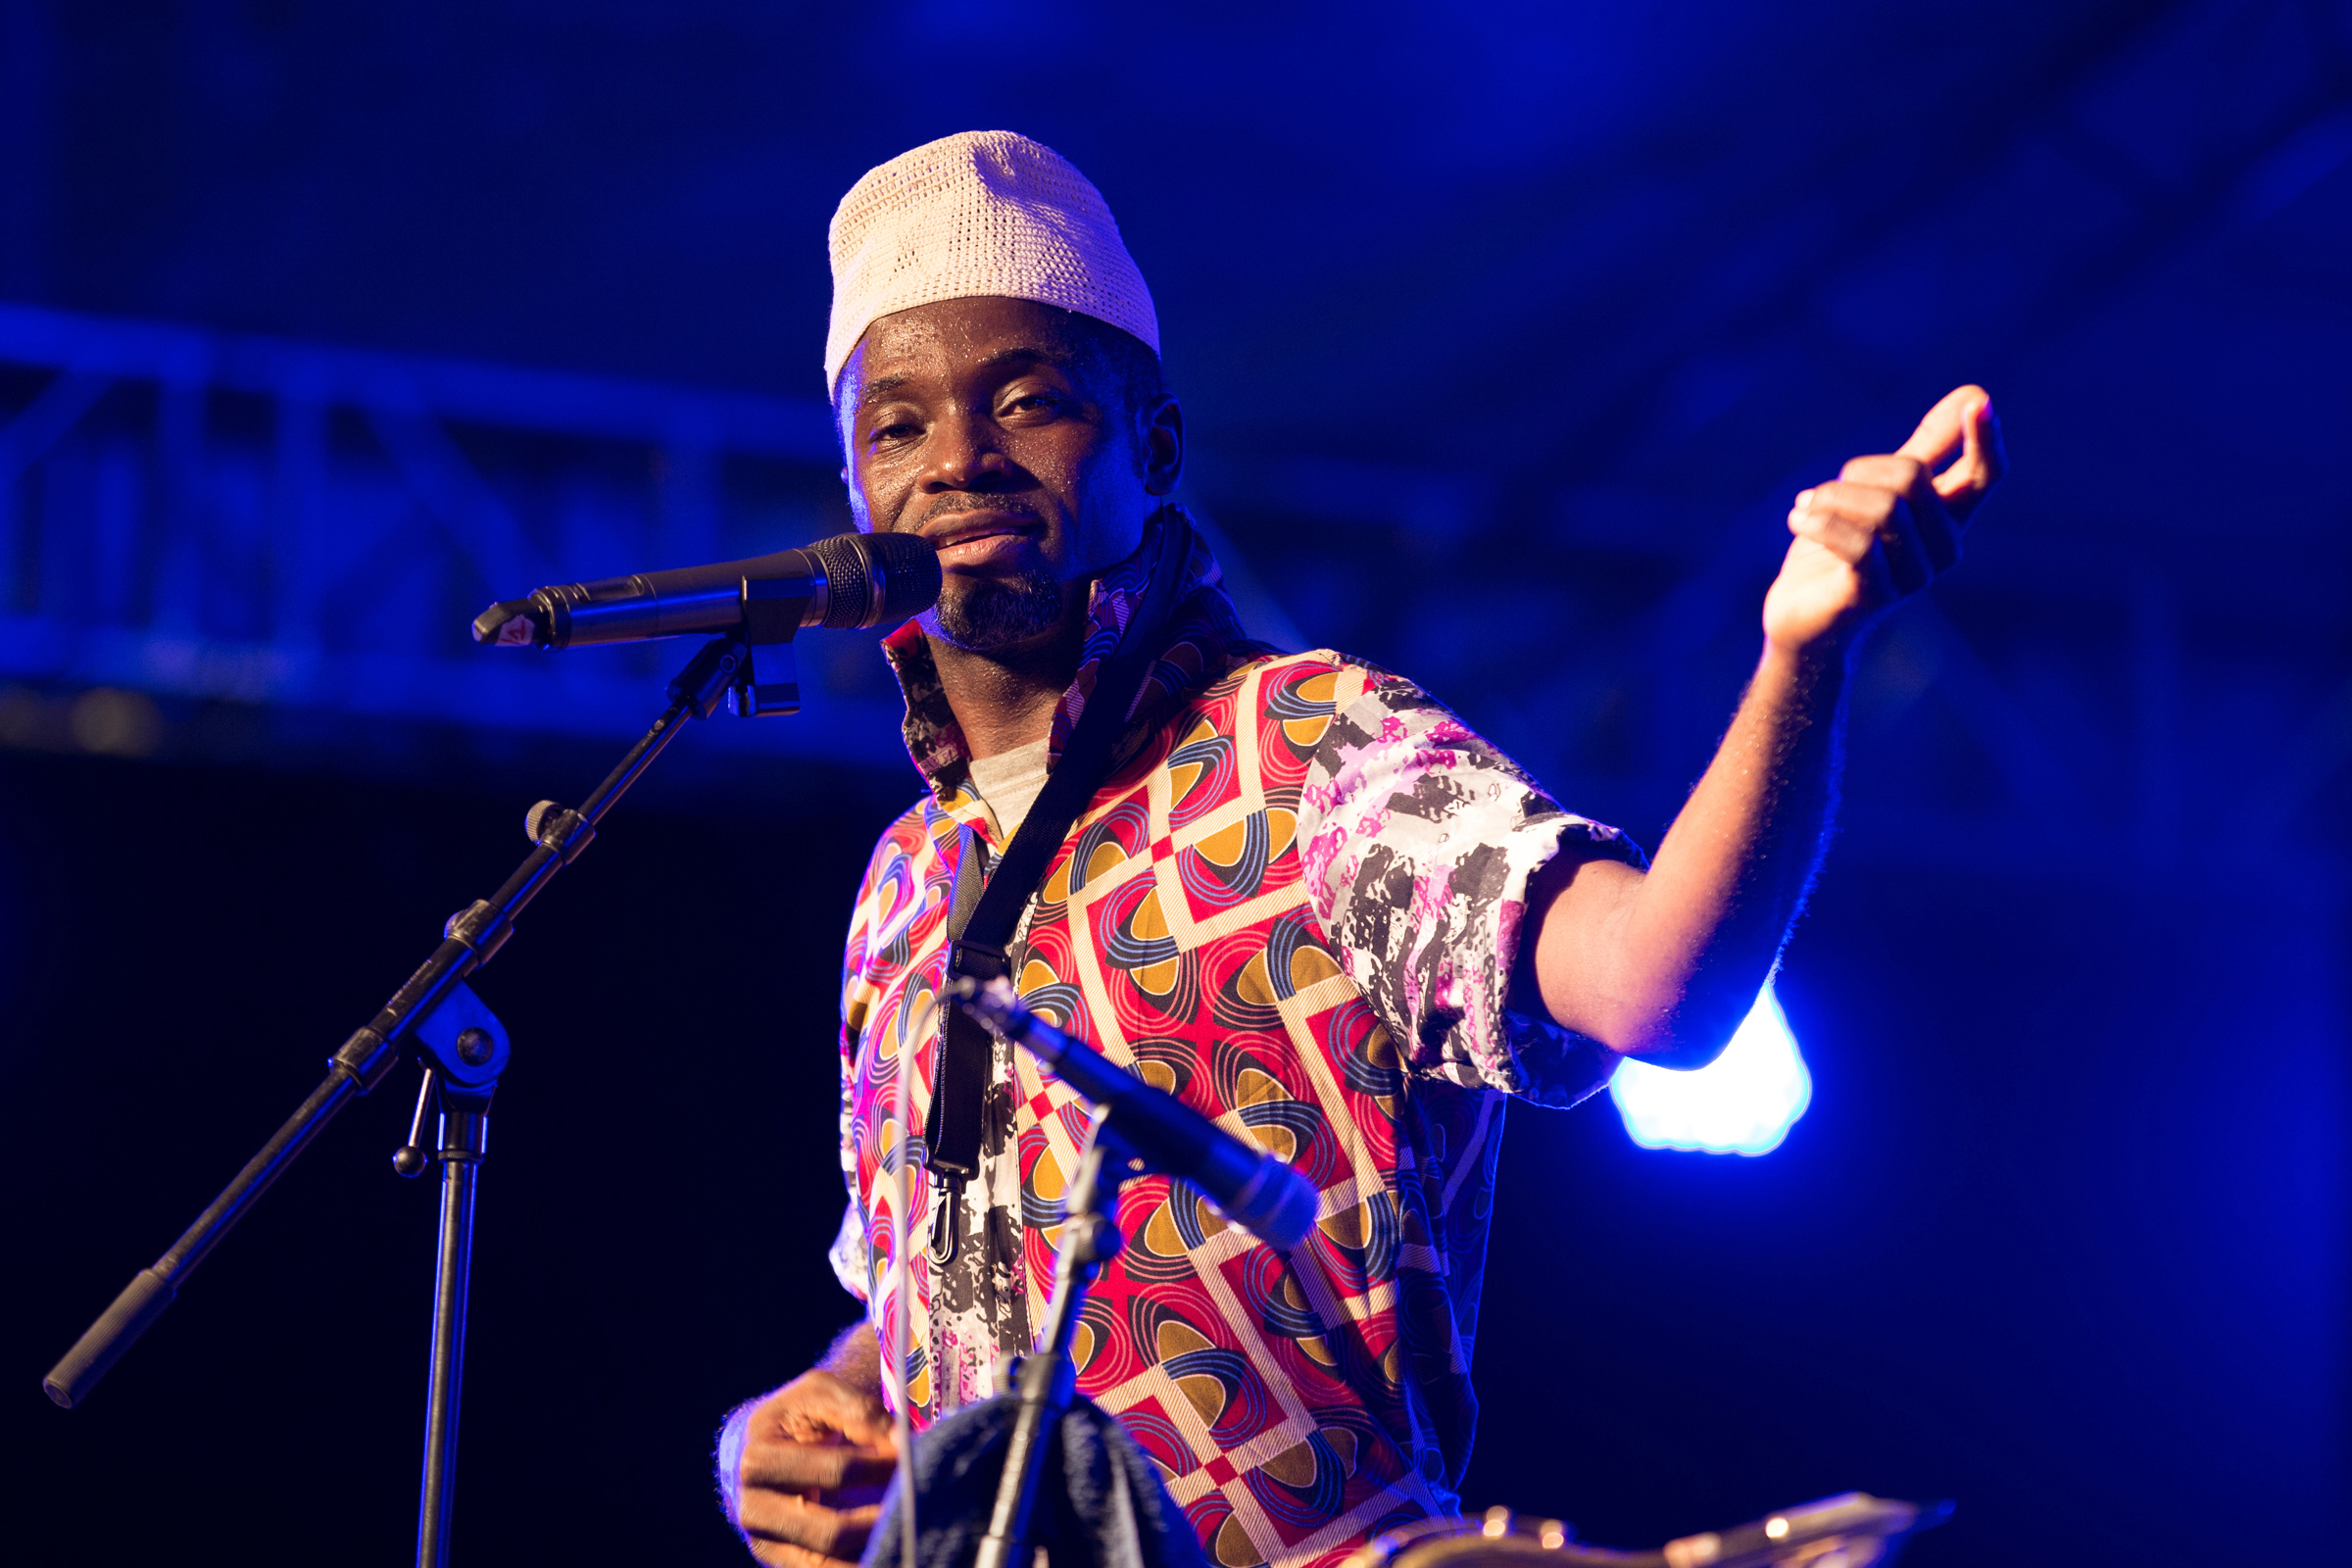 Nigerian Sean Olota and Extasi Gang, his nine member band performed a strong set based on afrobeat rhythms